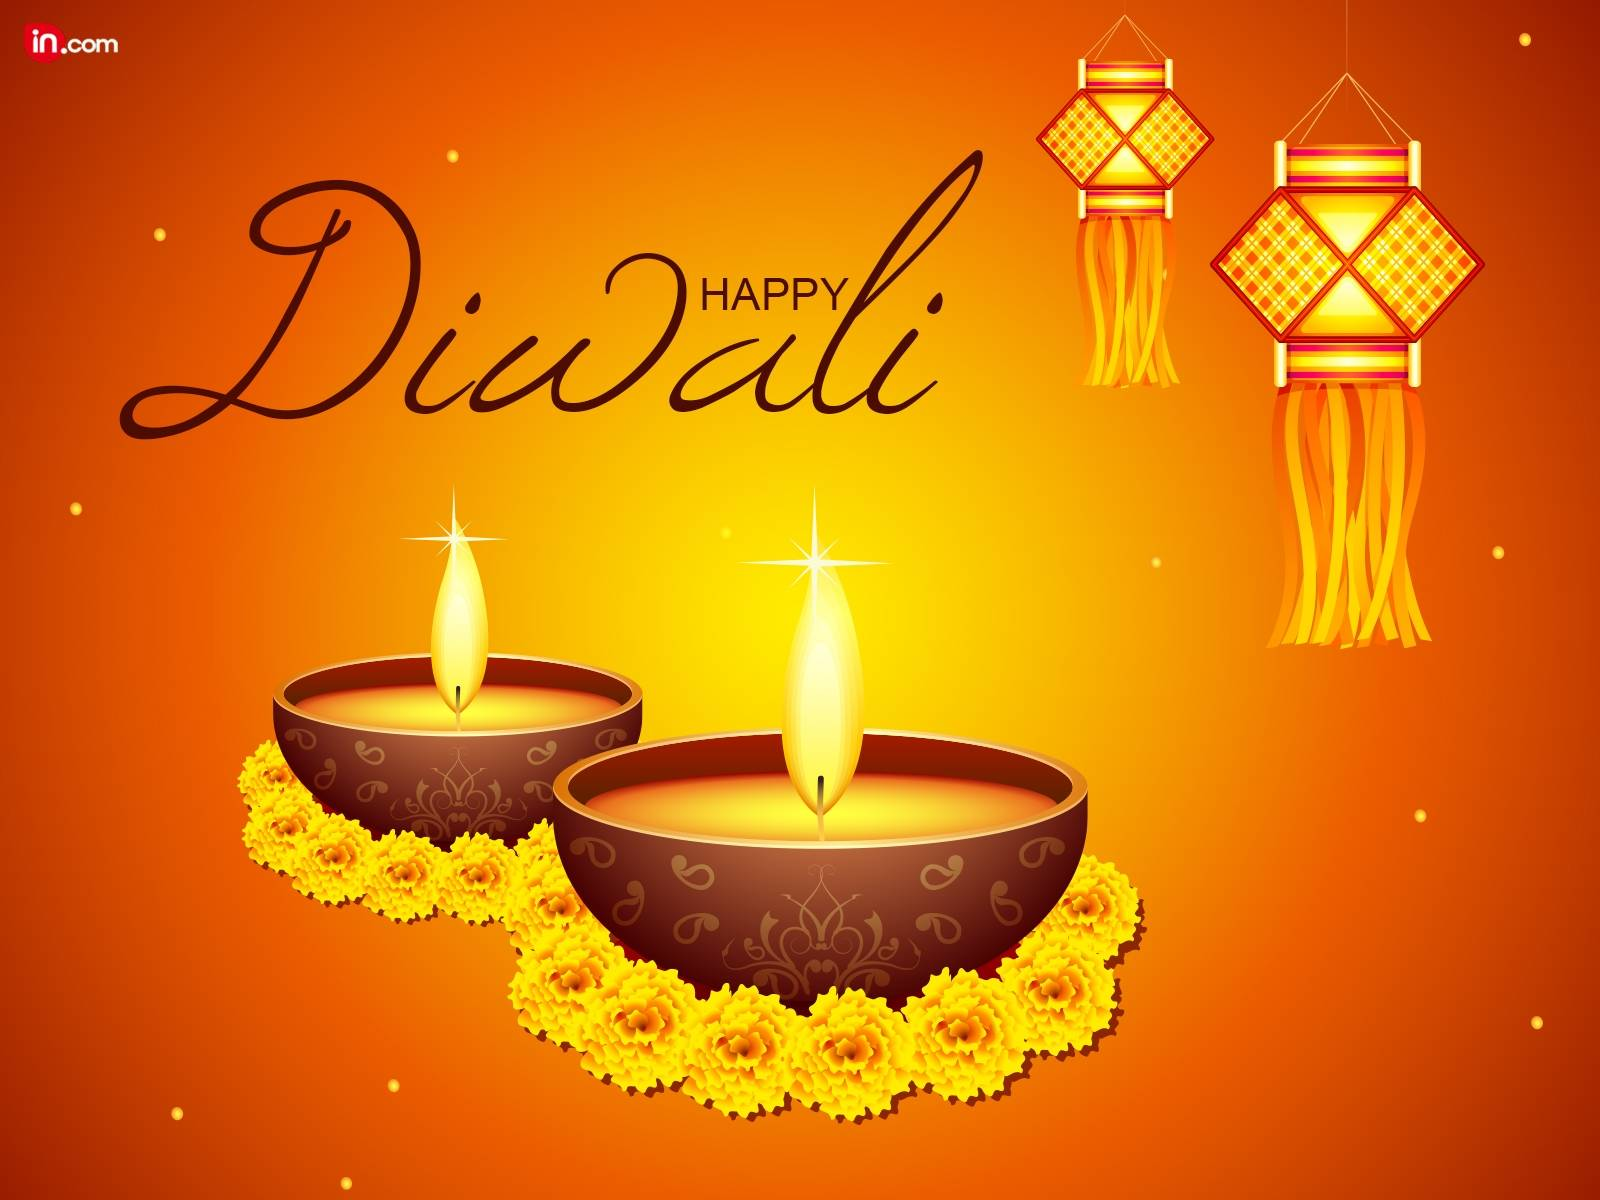 essay on diwali festival in english for kids Diwali essay [1] ~ 200 words diwali is a very important festival of india it is celebrated all over our country this festival is celebrated to mark the victory of good over evil rama was the prince of ayodhya he killed the evil king ravana in a battle to get back his wife sita.